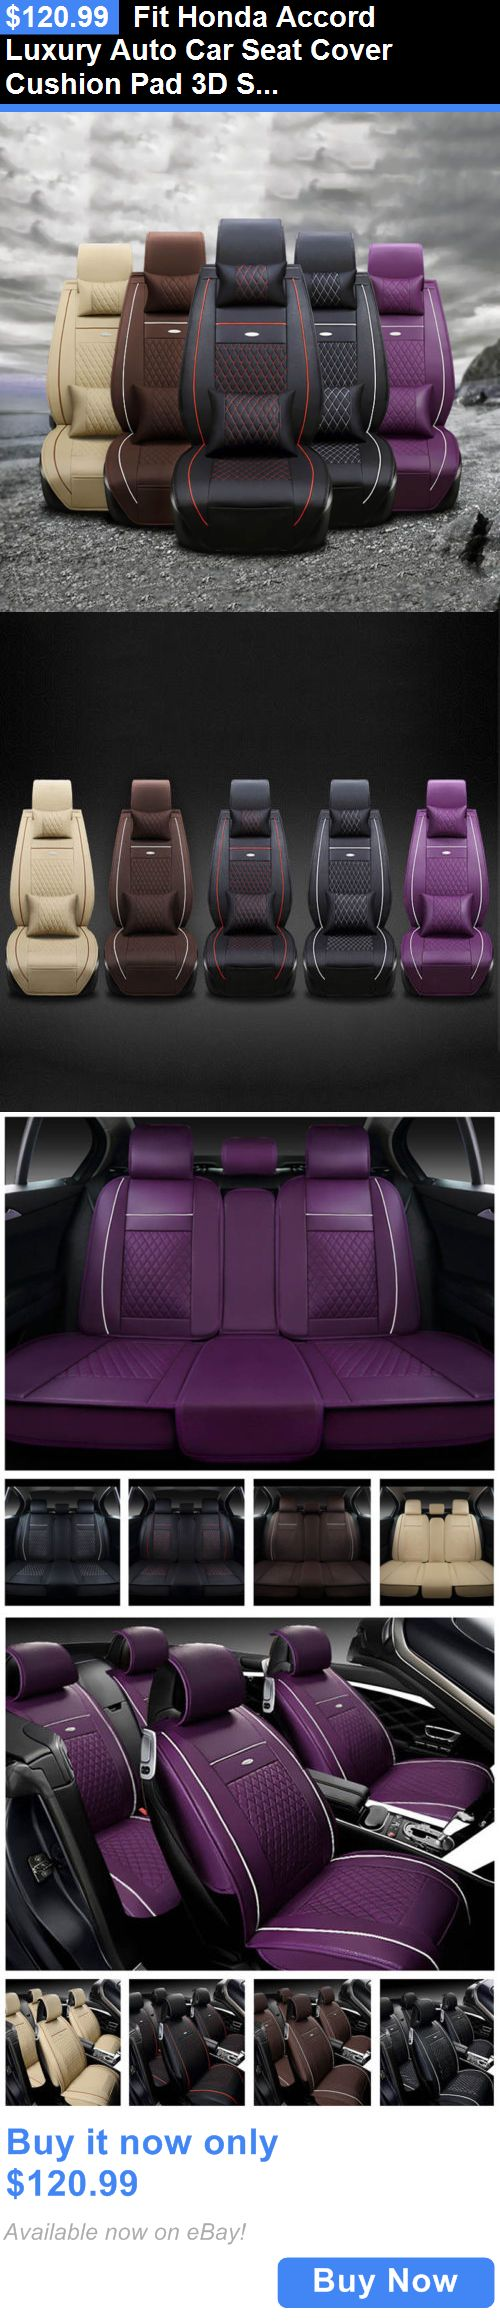 Luxury Cars Fit Honda Accord Auto Car Seat Cover Cushion Pad 3D Surrounded Pu